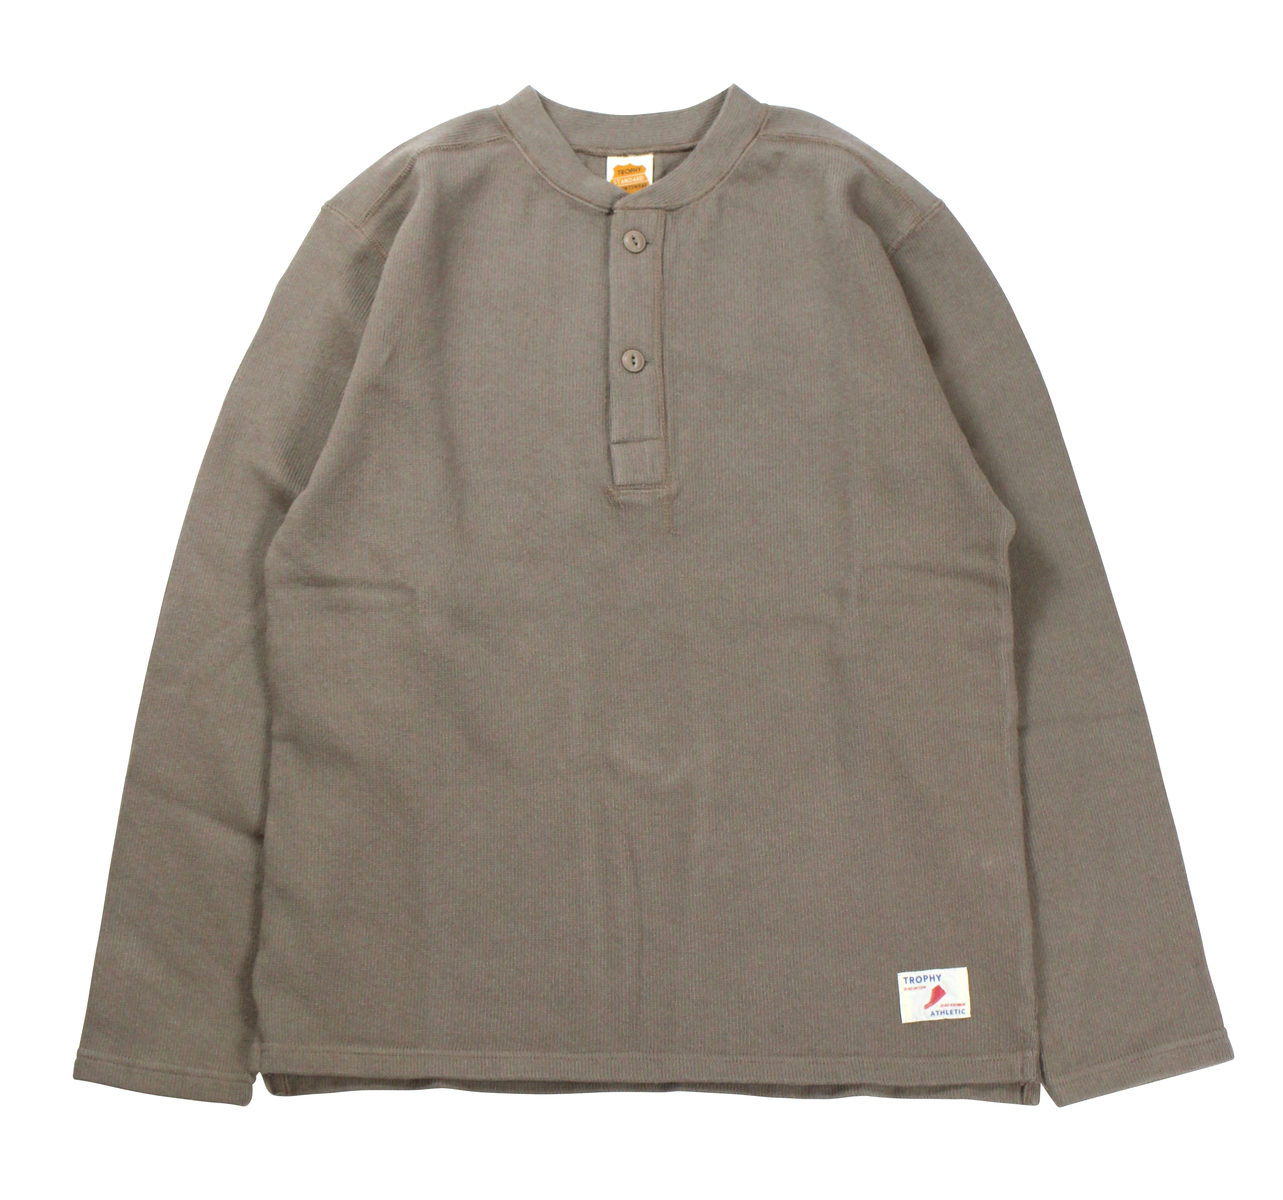 TROPHY CLOTHING [-Naval Henley L/S Tee- Brown size.36,38,40,42]